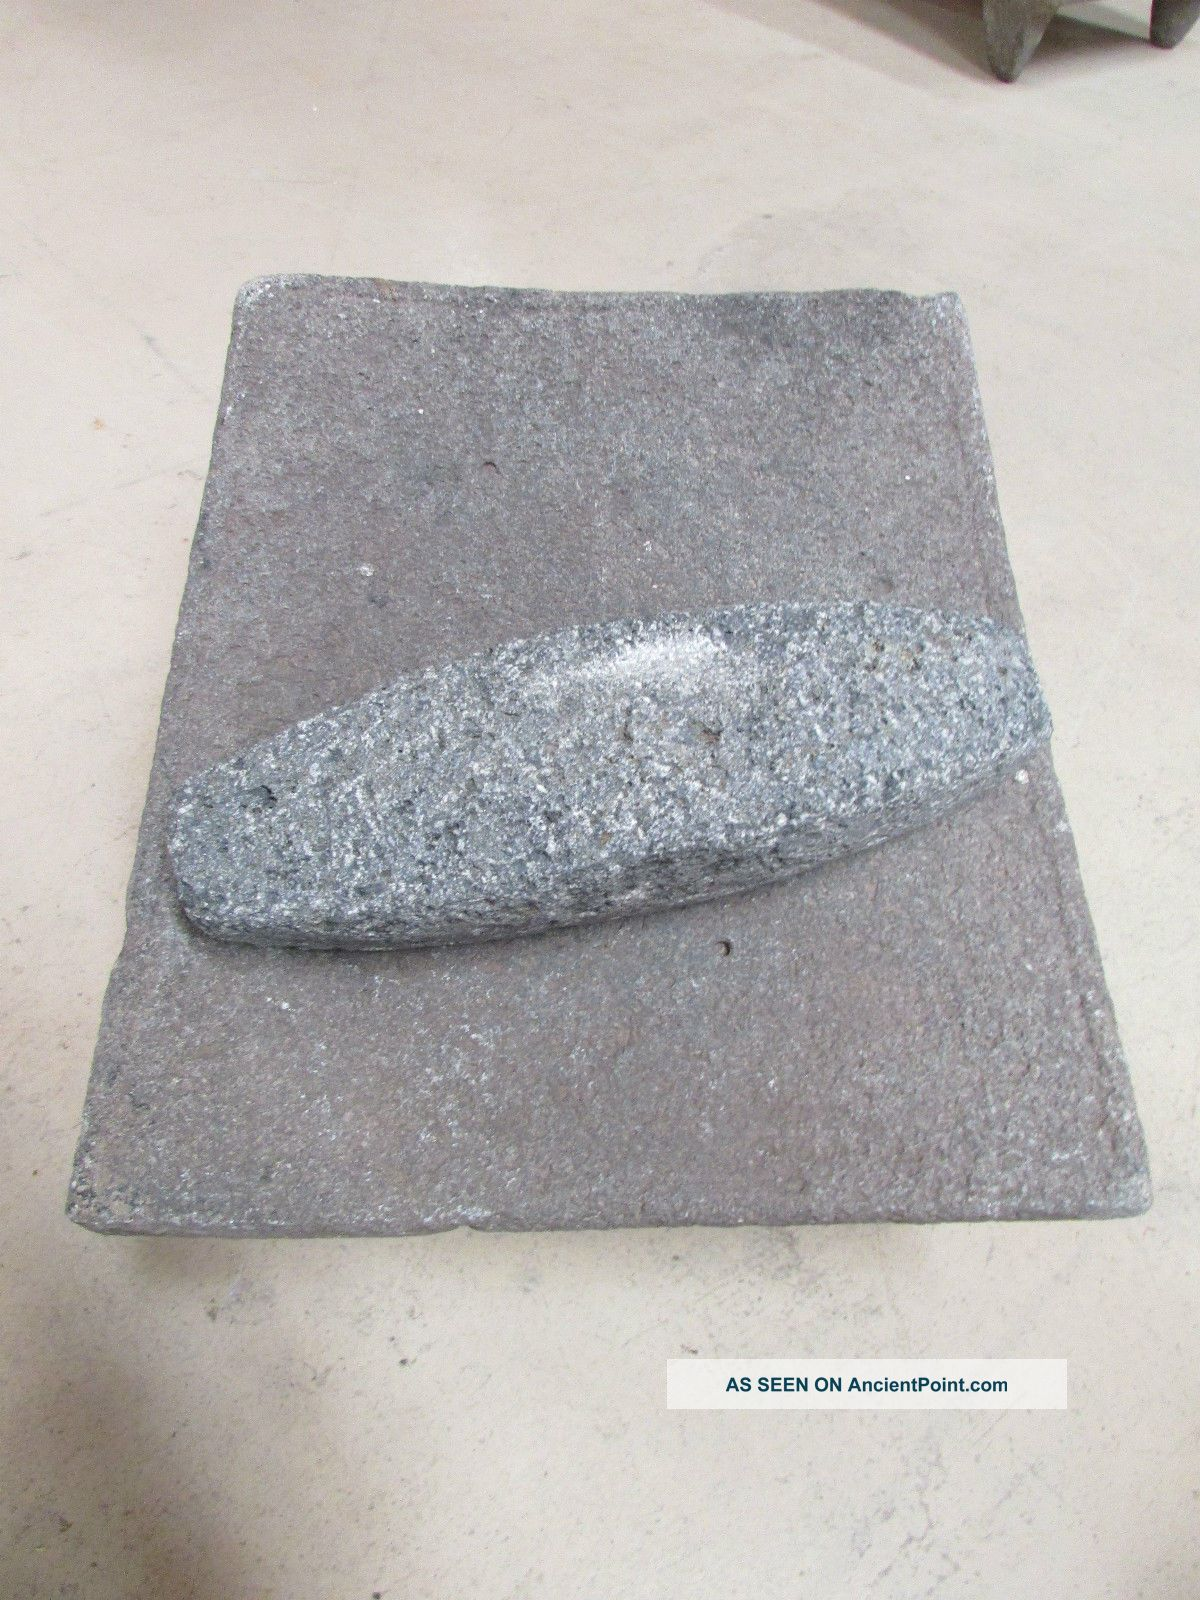 Antique Metate 2 - Grinder - Rustic - Complete - Old Mexican - Metates - Primitive - 15x12x10 Latin American photo